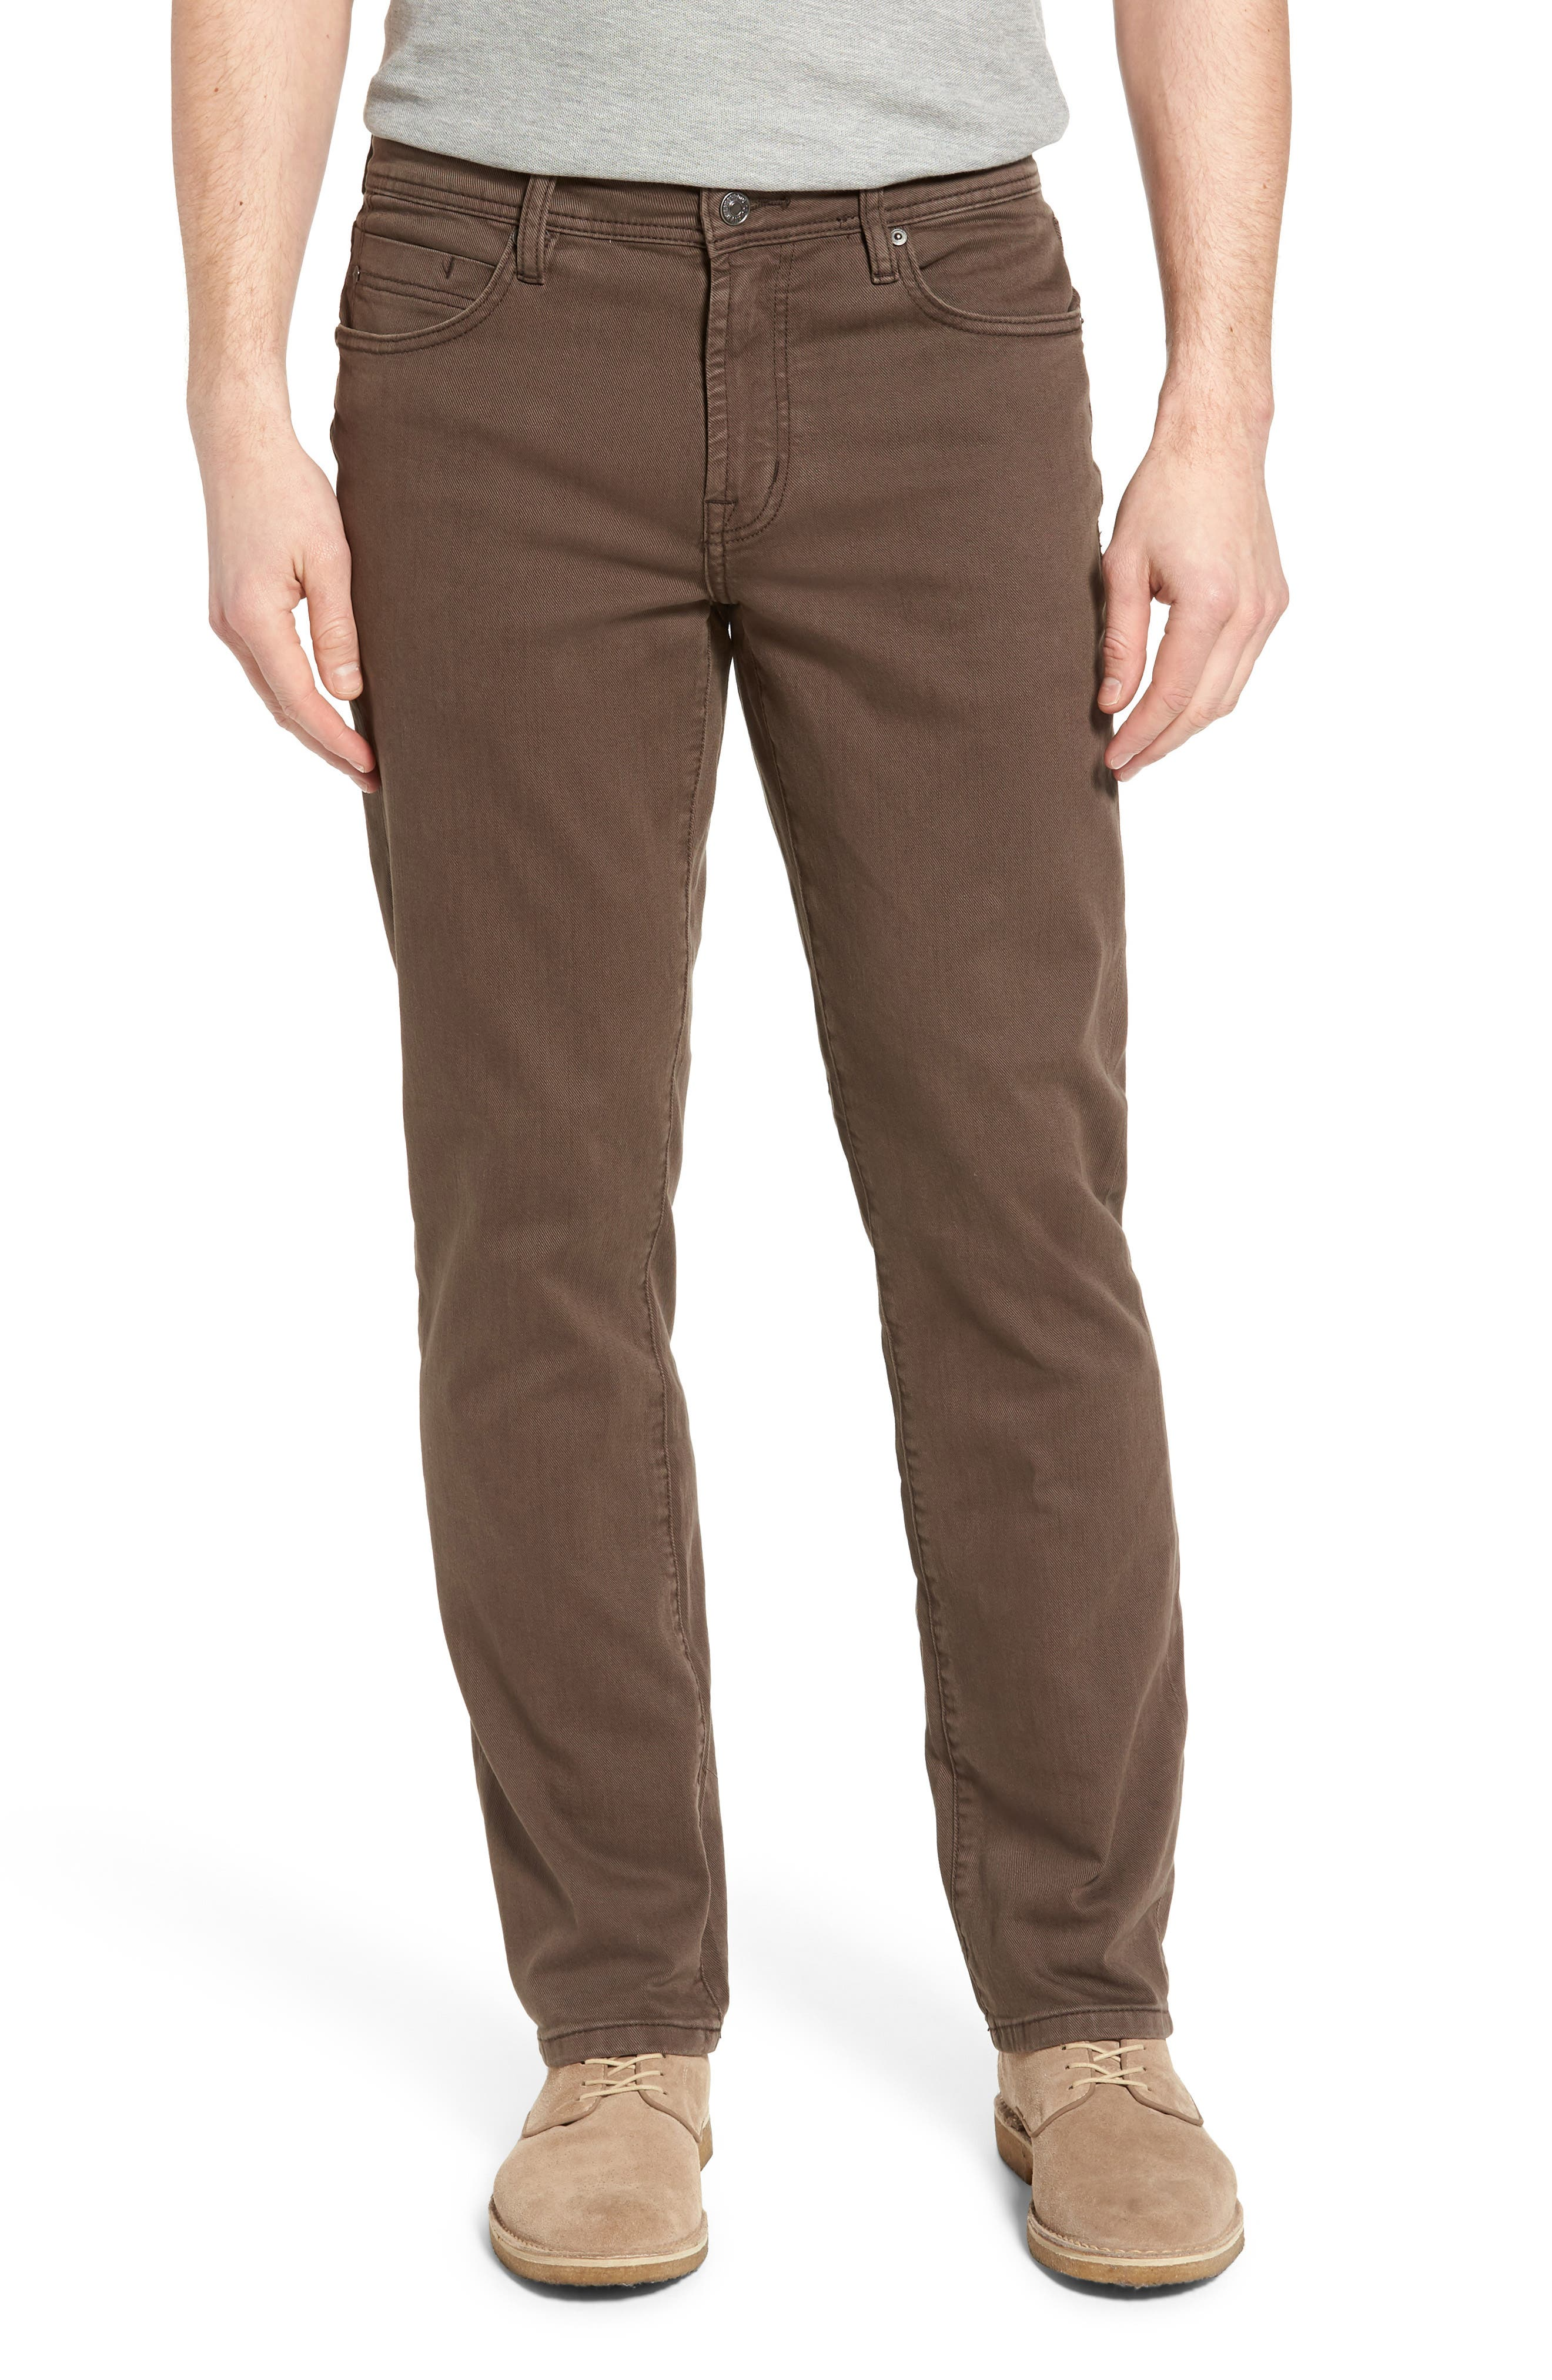 Jeans Co. Regent Relaxed Fit Jeans,                             Main thumbnail 1, color,                             Tobacco Leaf